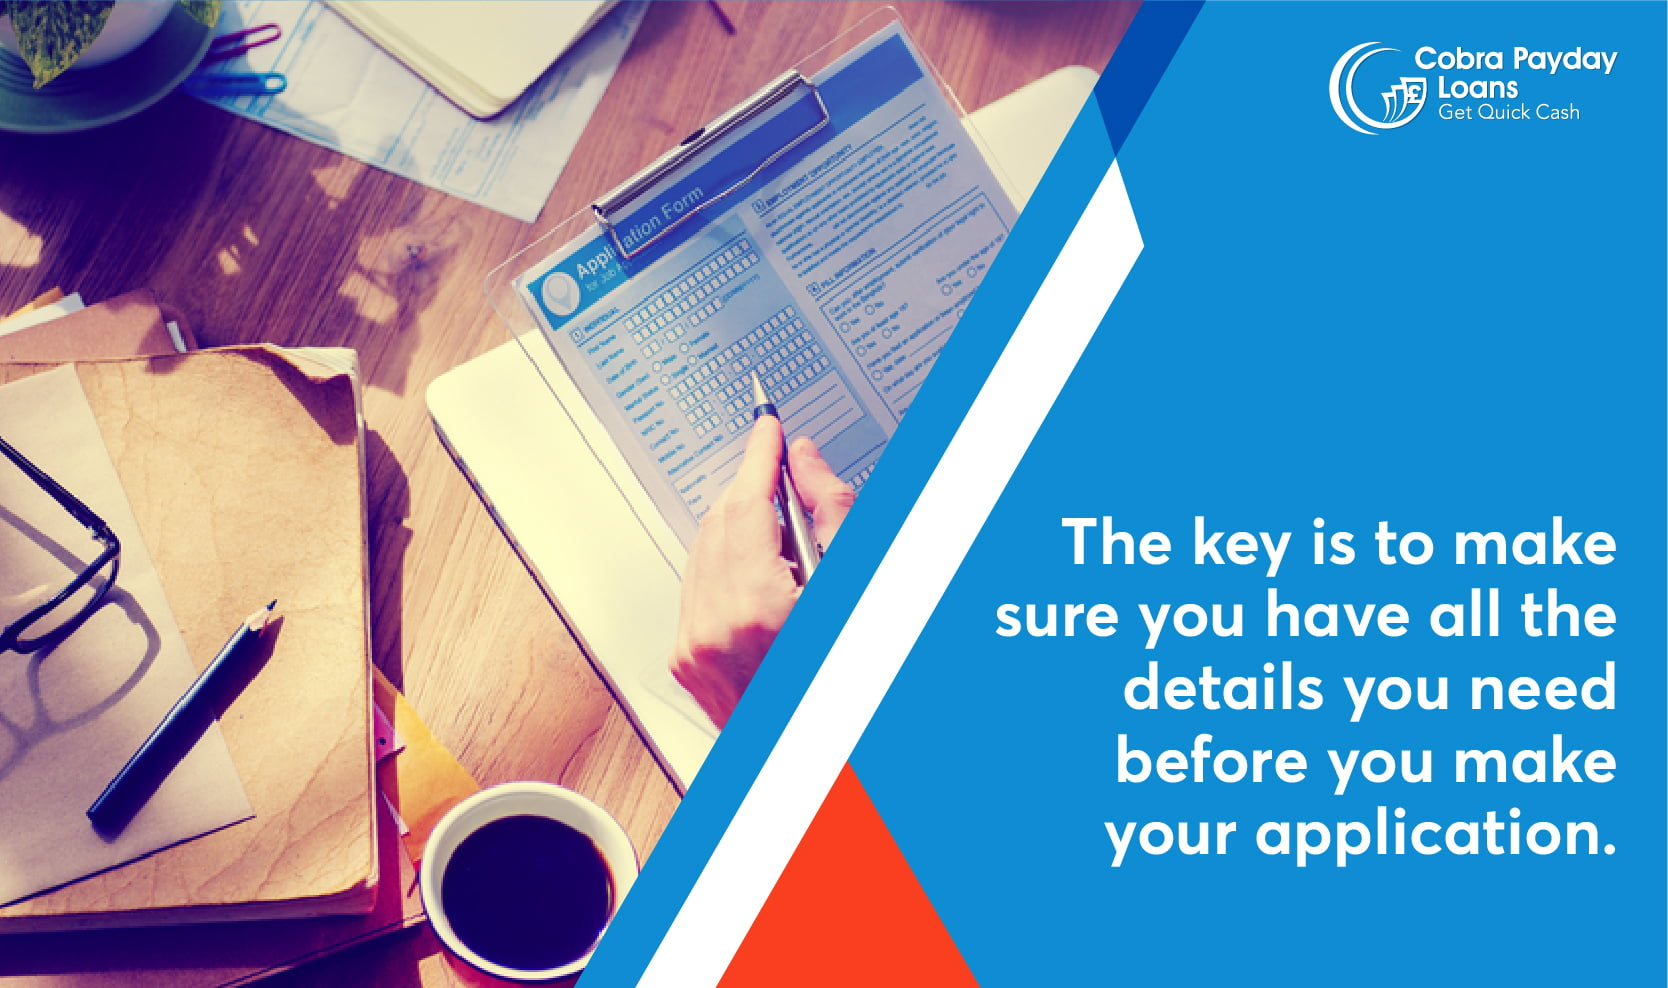 The key is to make sure you have all the details you need before you make your application